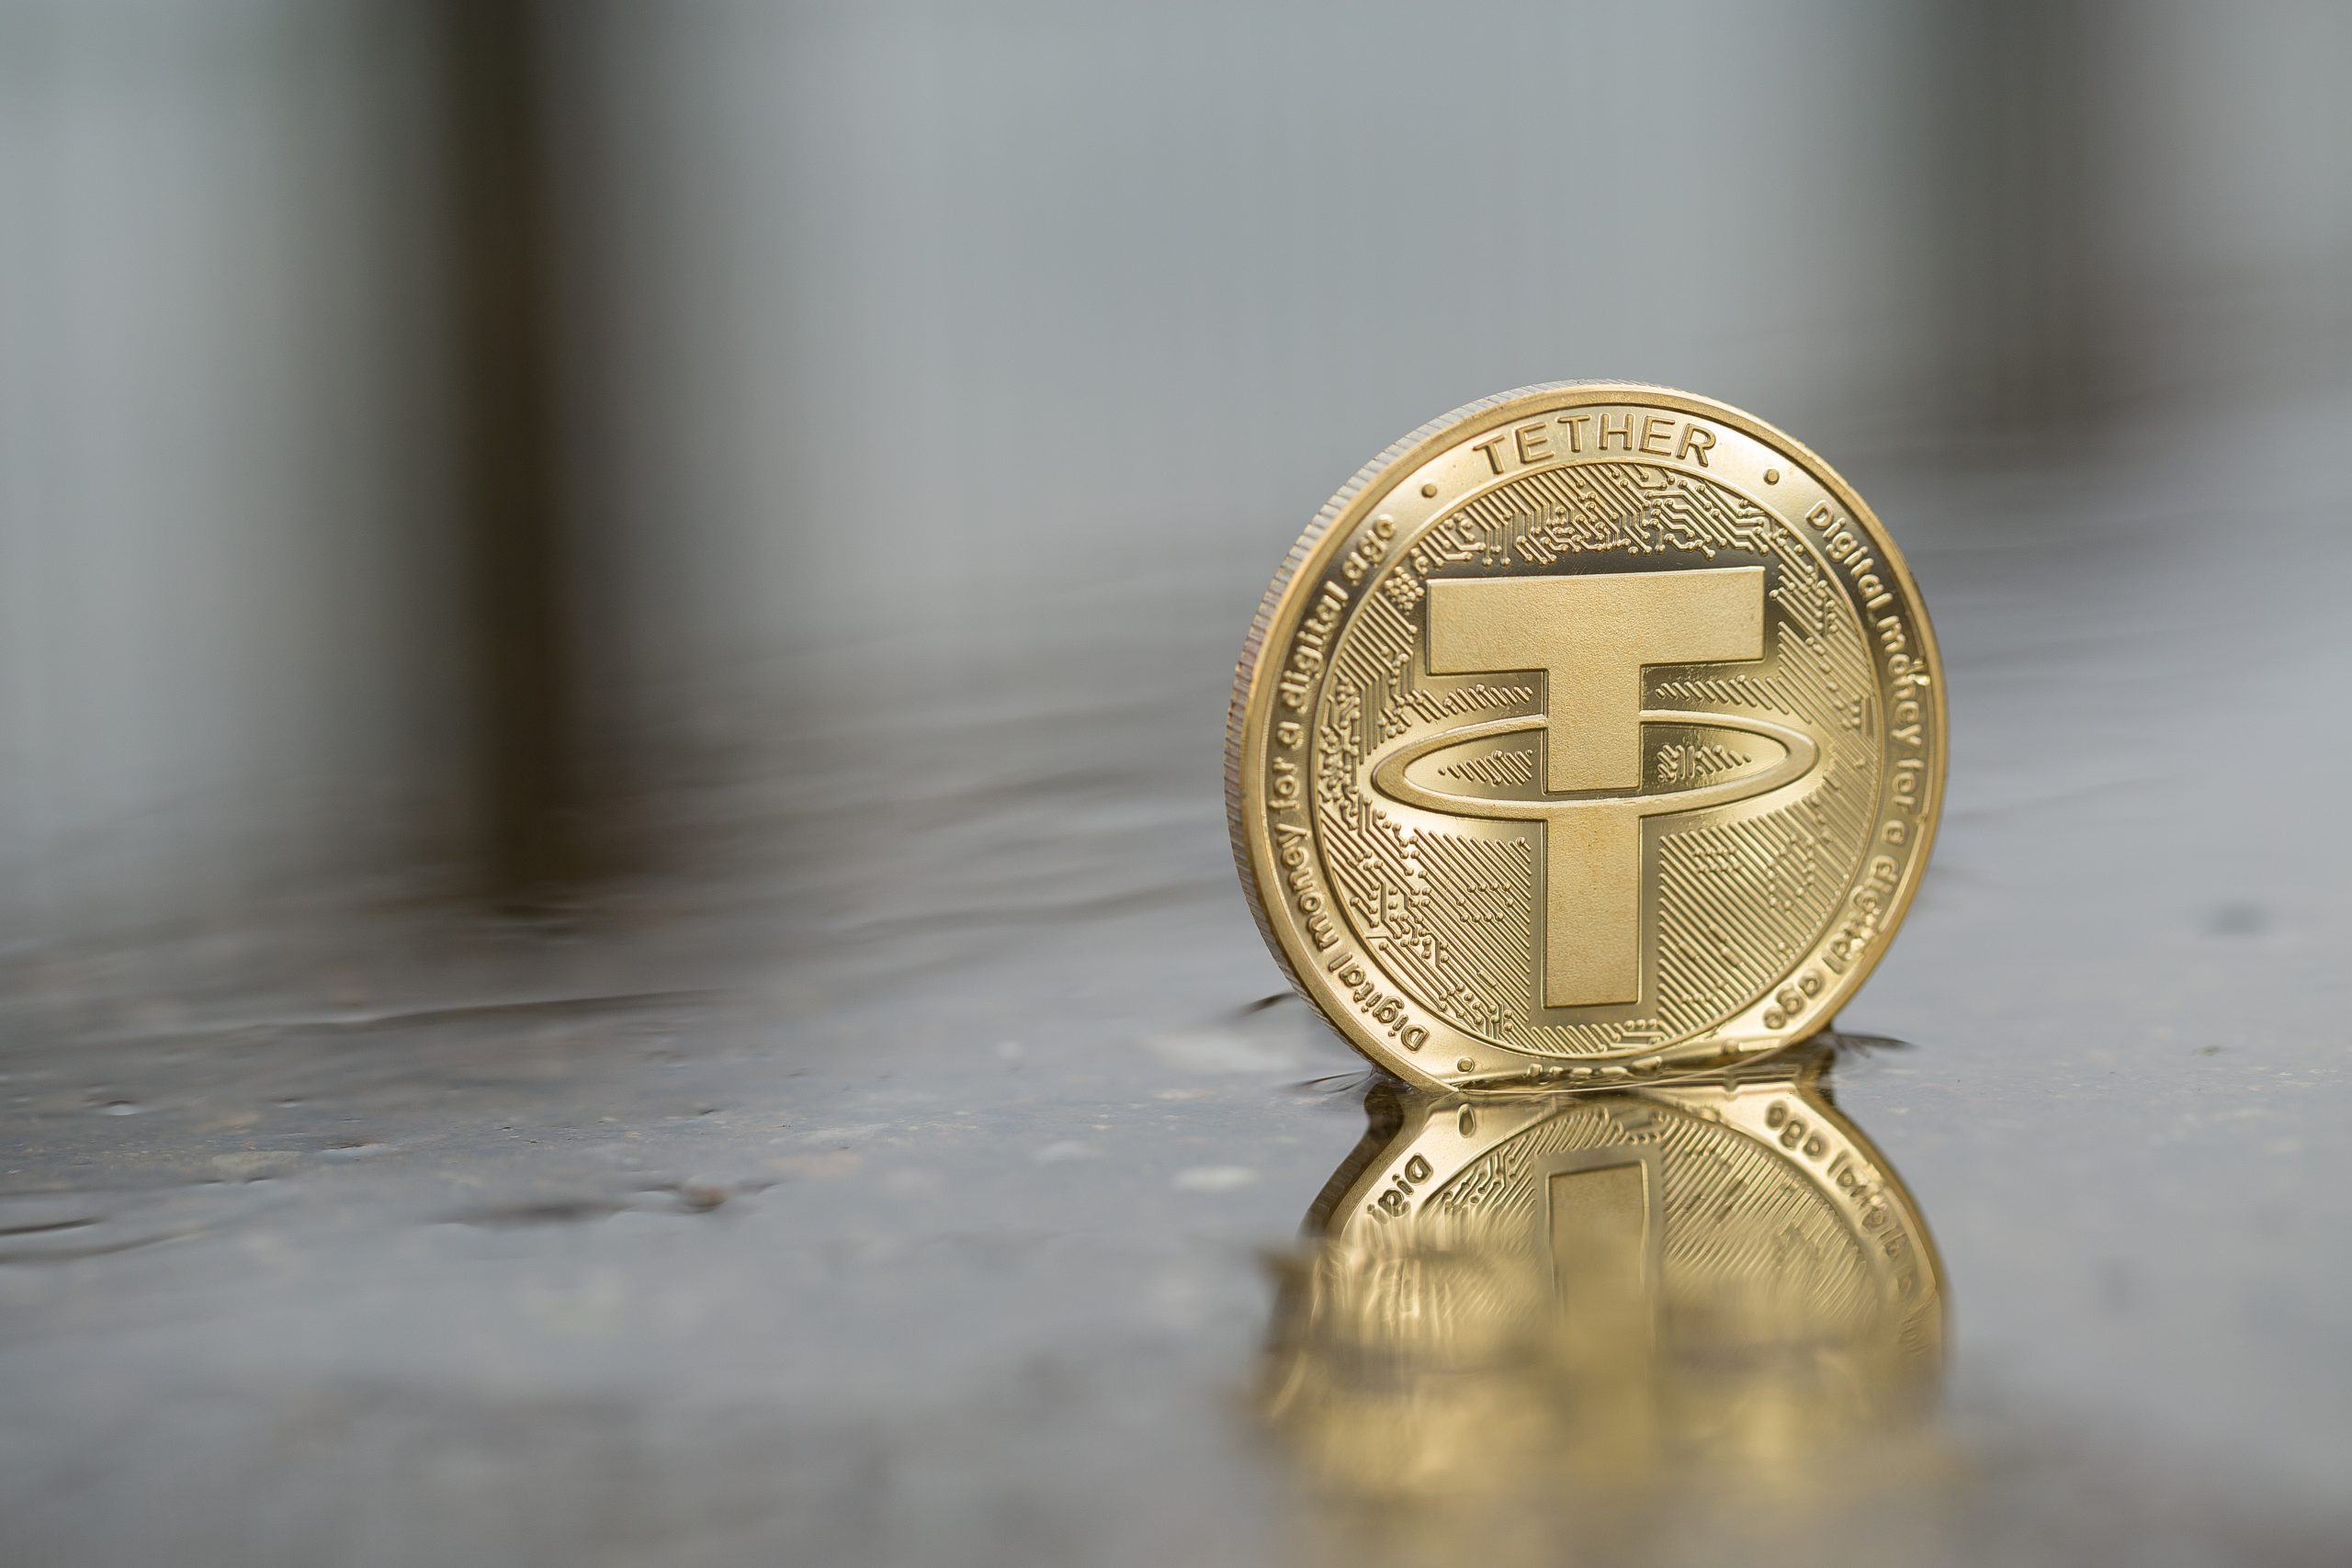 Is Tether True a Rip-off to Enrich Bitcoin Investors?